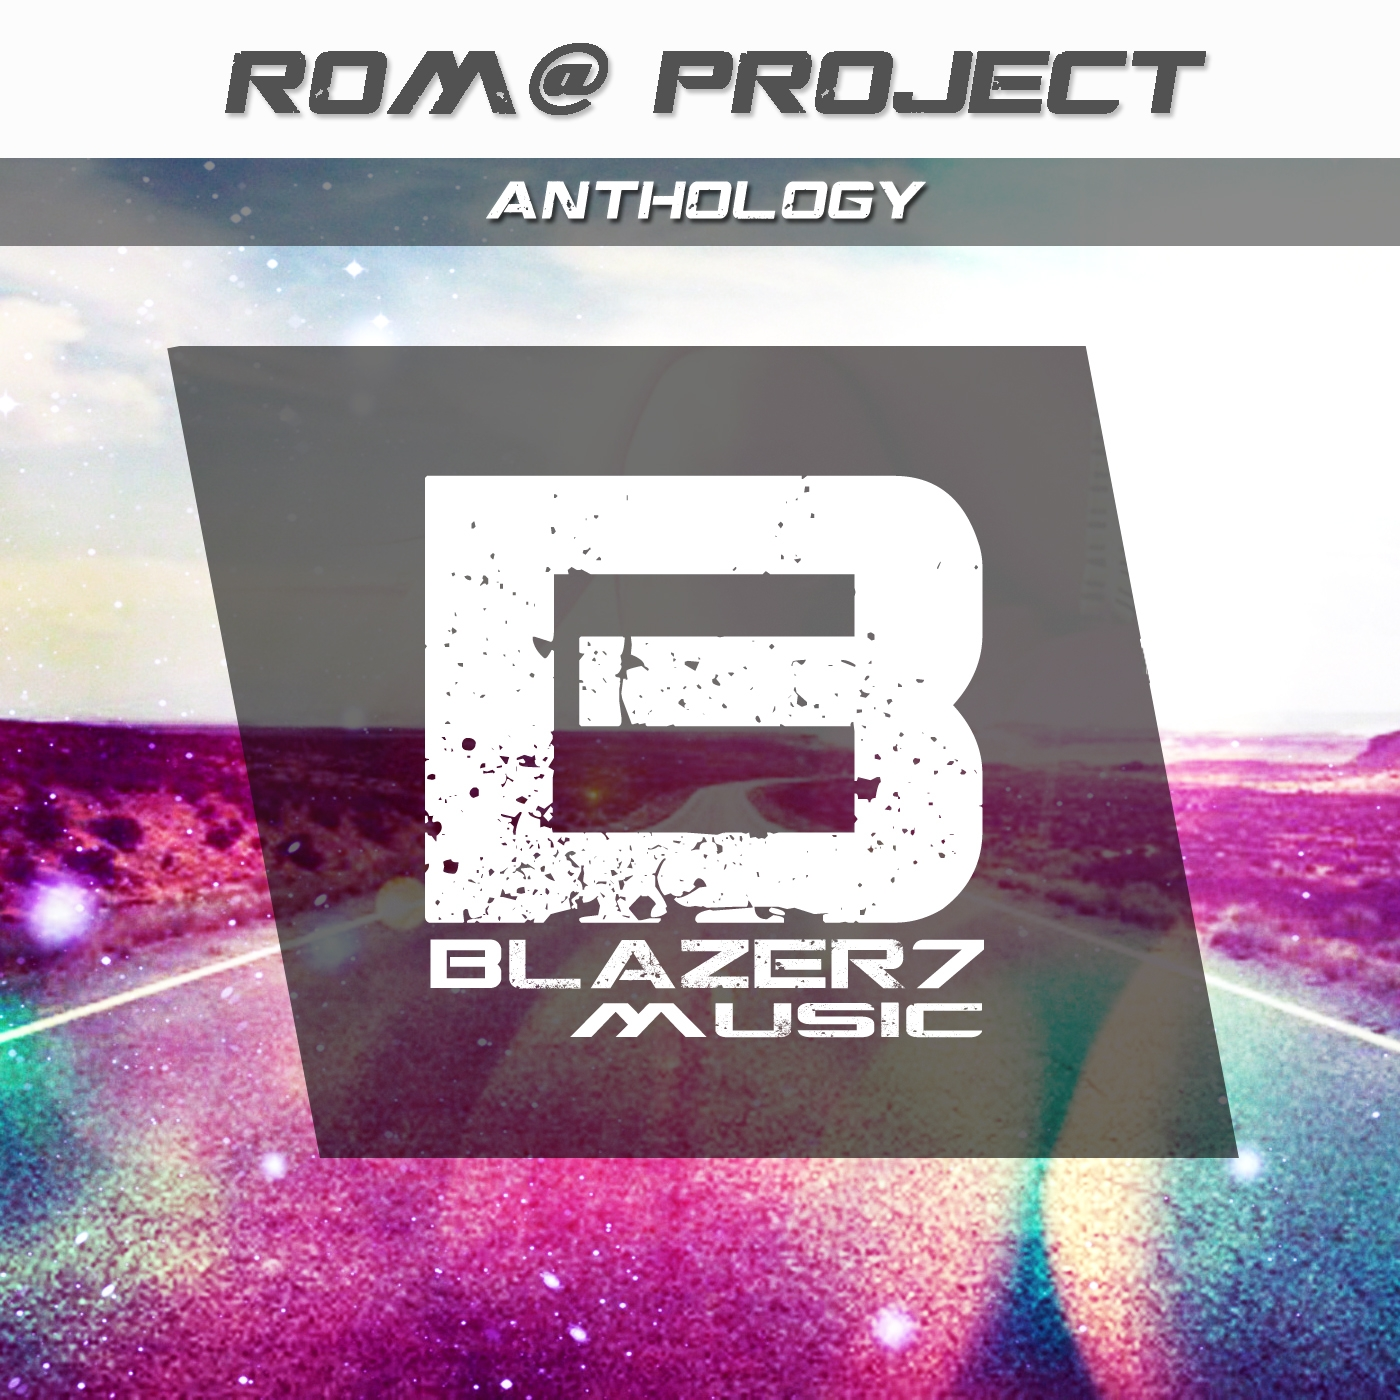 Paw Luk - Love Is (Rom@ Project Remix)